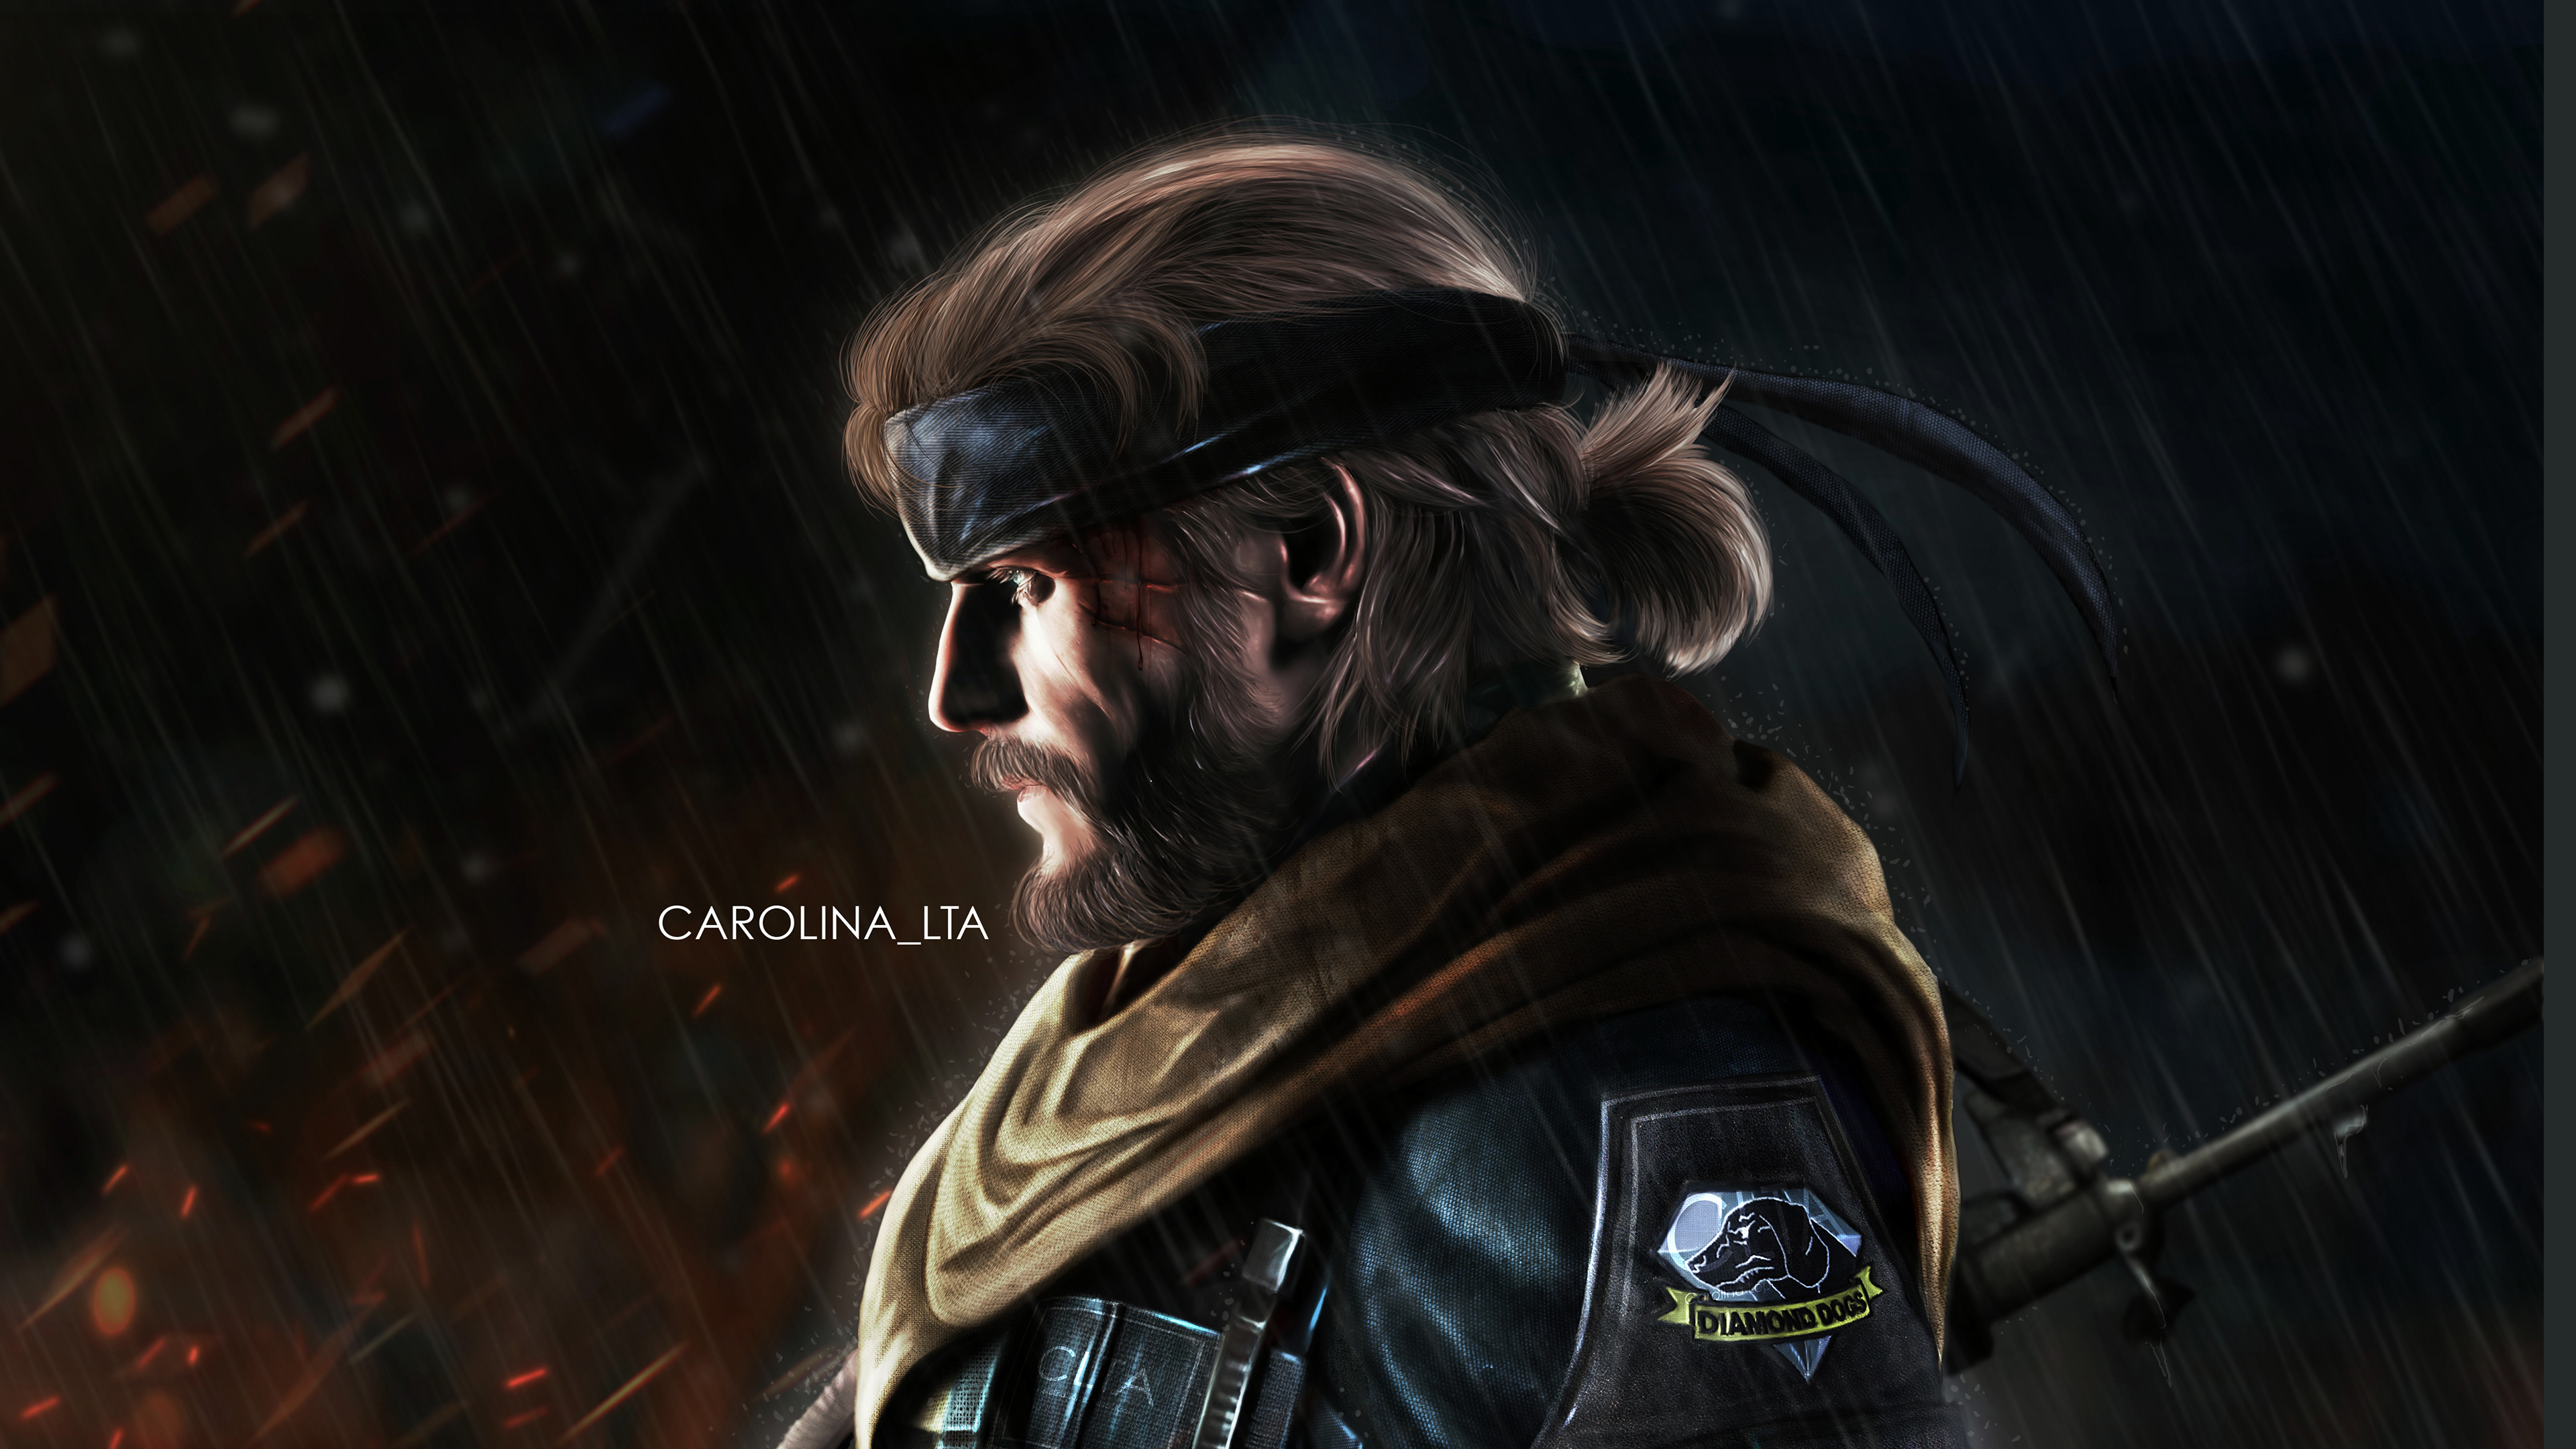 Venom Snake Warrior 4k Hd Artist 4k Wallpapers Images Backgrounds Photos And Pictures